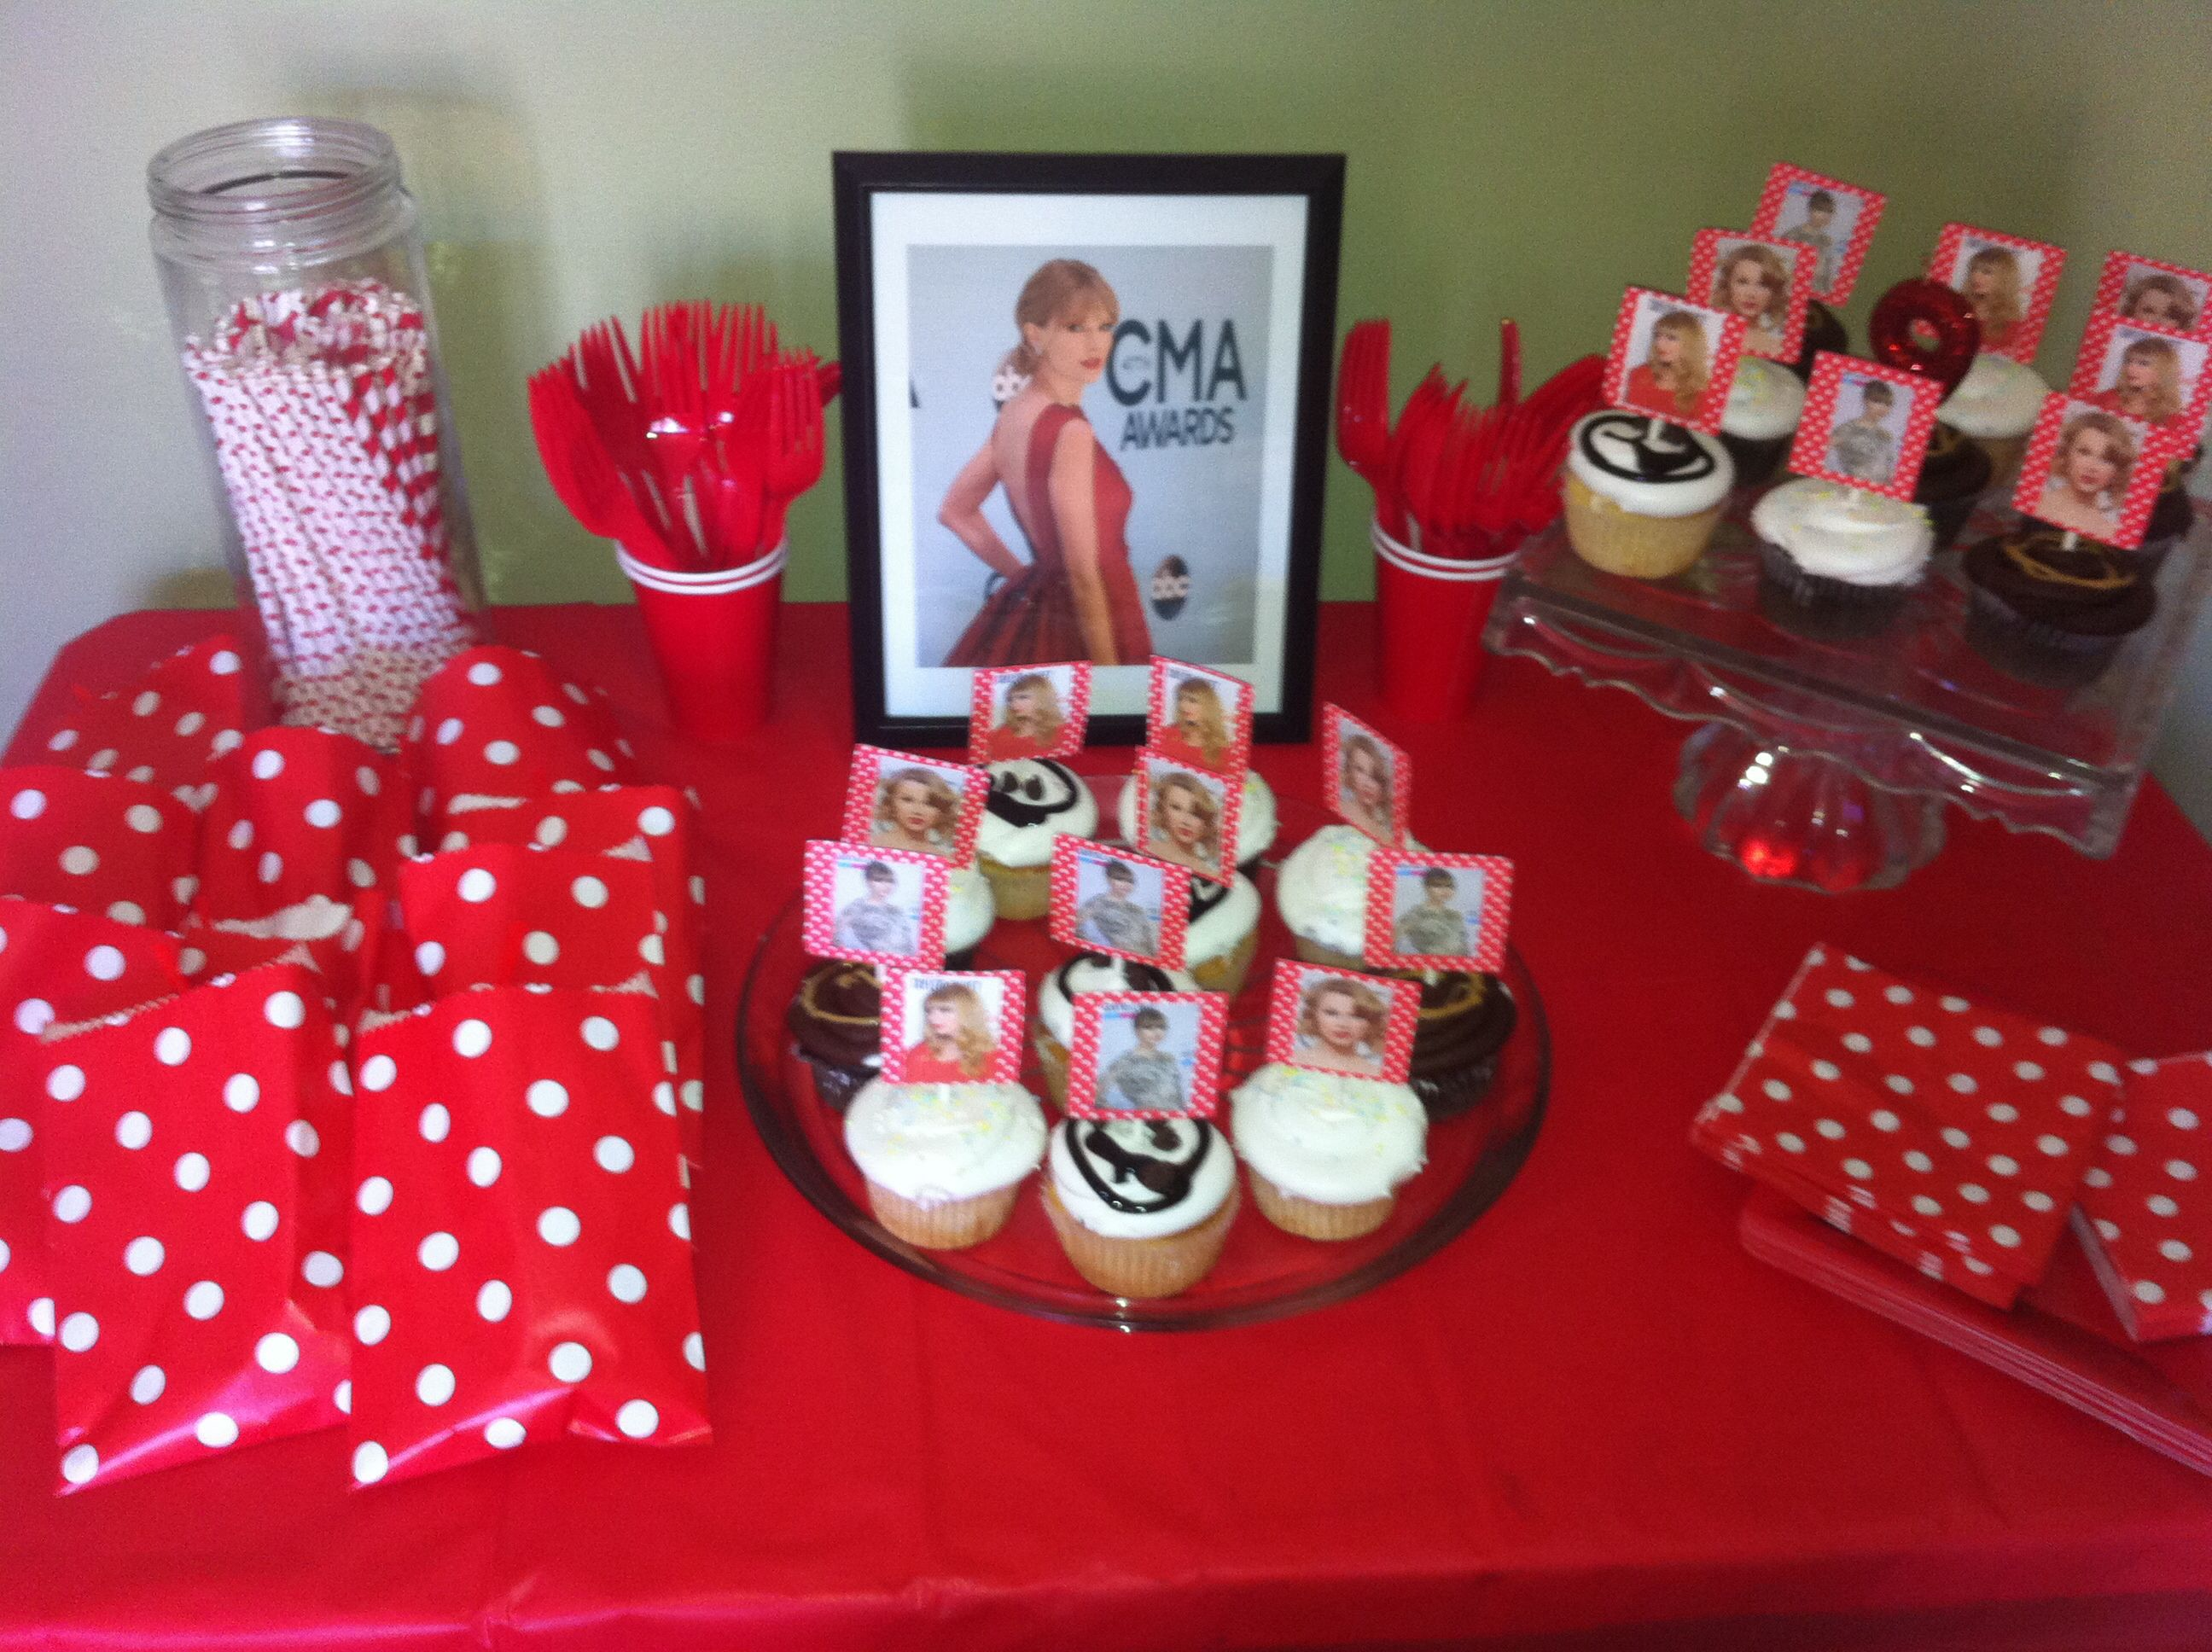 Pin By Becky Shaffer On Lexis Party Taylor Swift Birthday Party Ideas Taylor Swift Birthday Taylor Swift Party